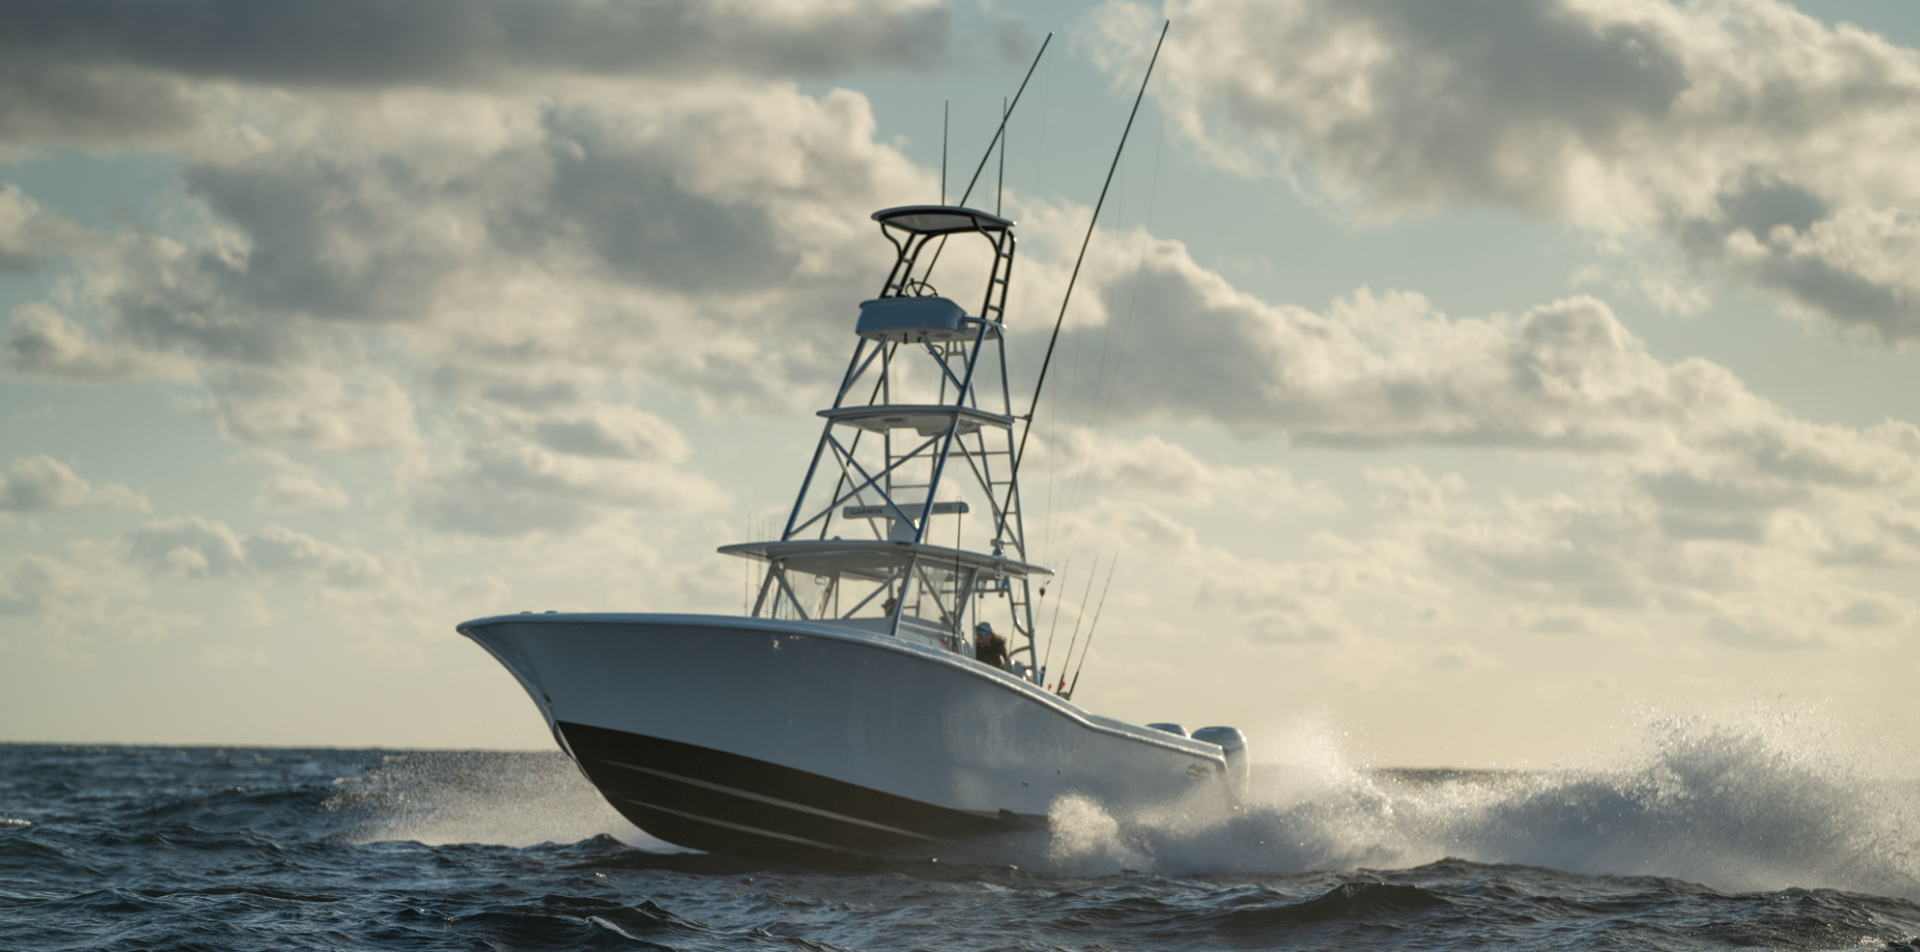 Invincible's world-class 42 foot mono-hull - designed for the truest of offshore fishermen.